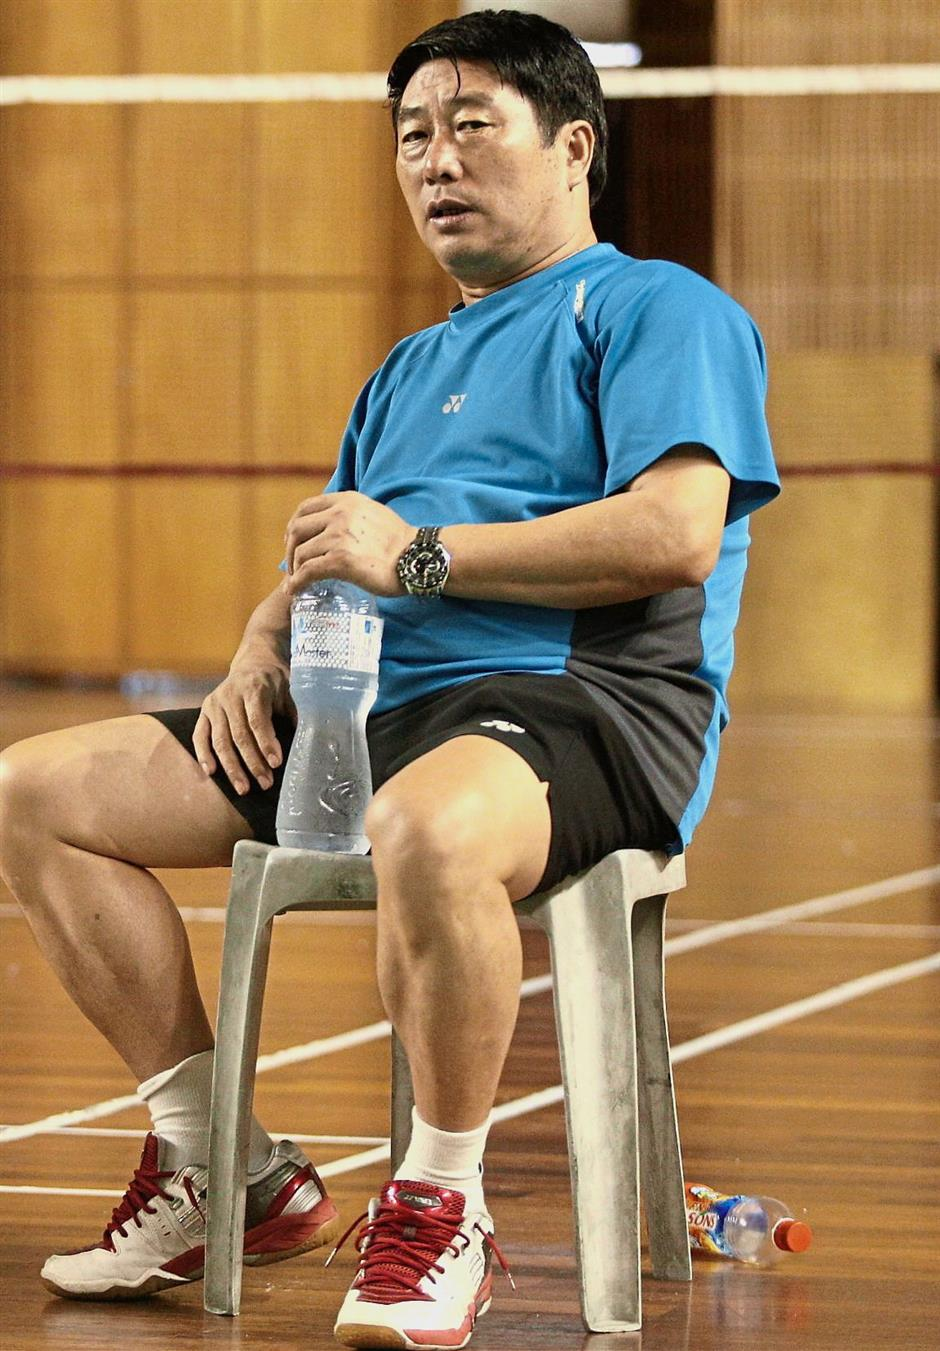 It's time to go: Zhou Kejian tendered his resignation as badminton singles coach yesterday.